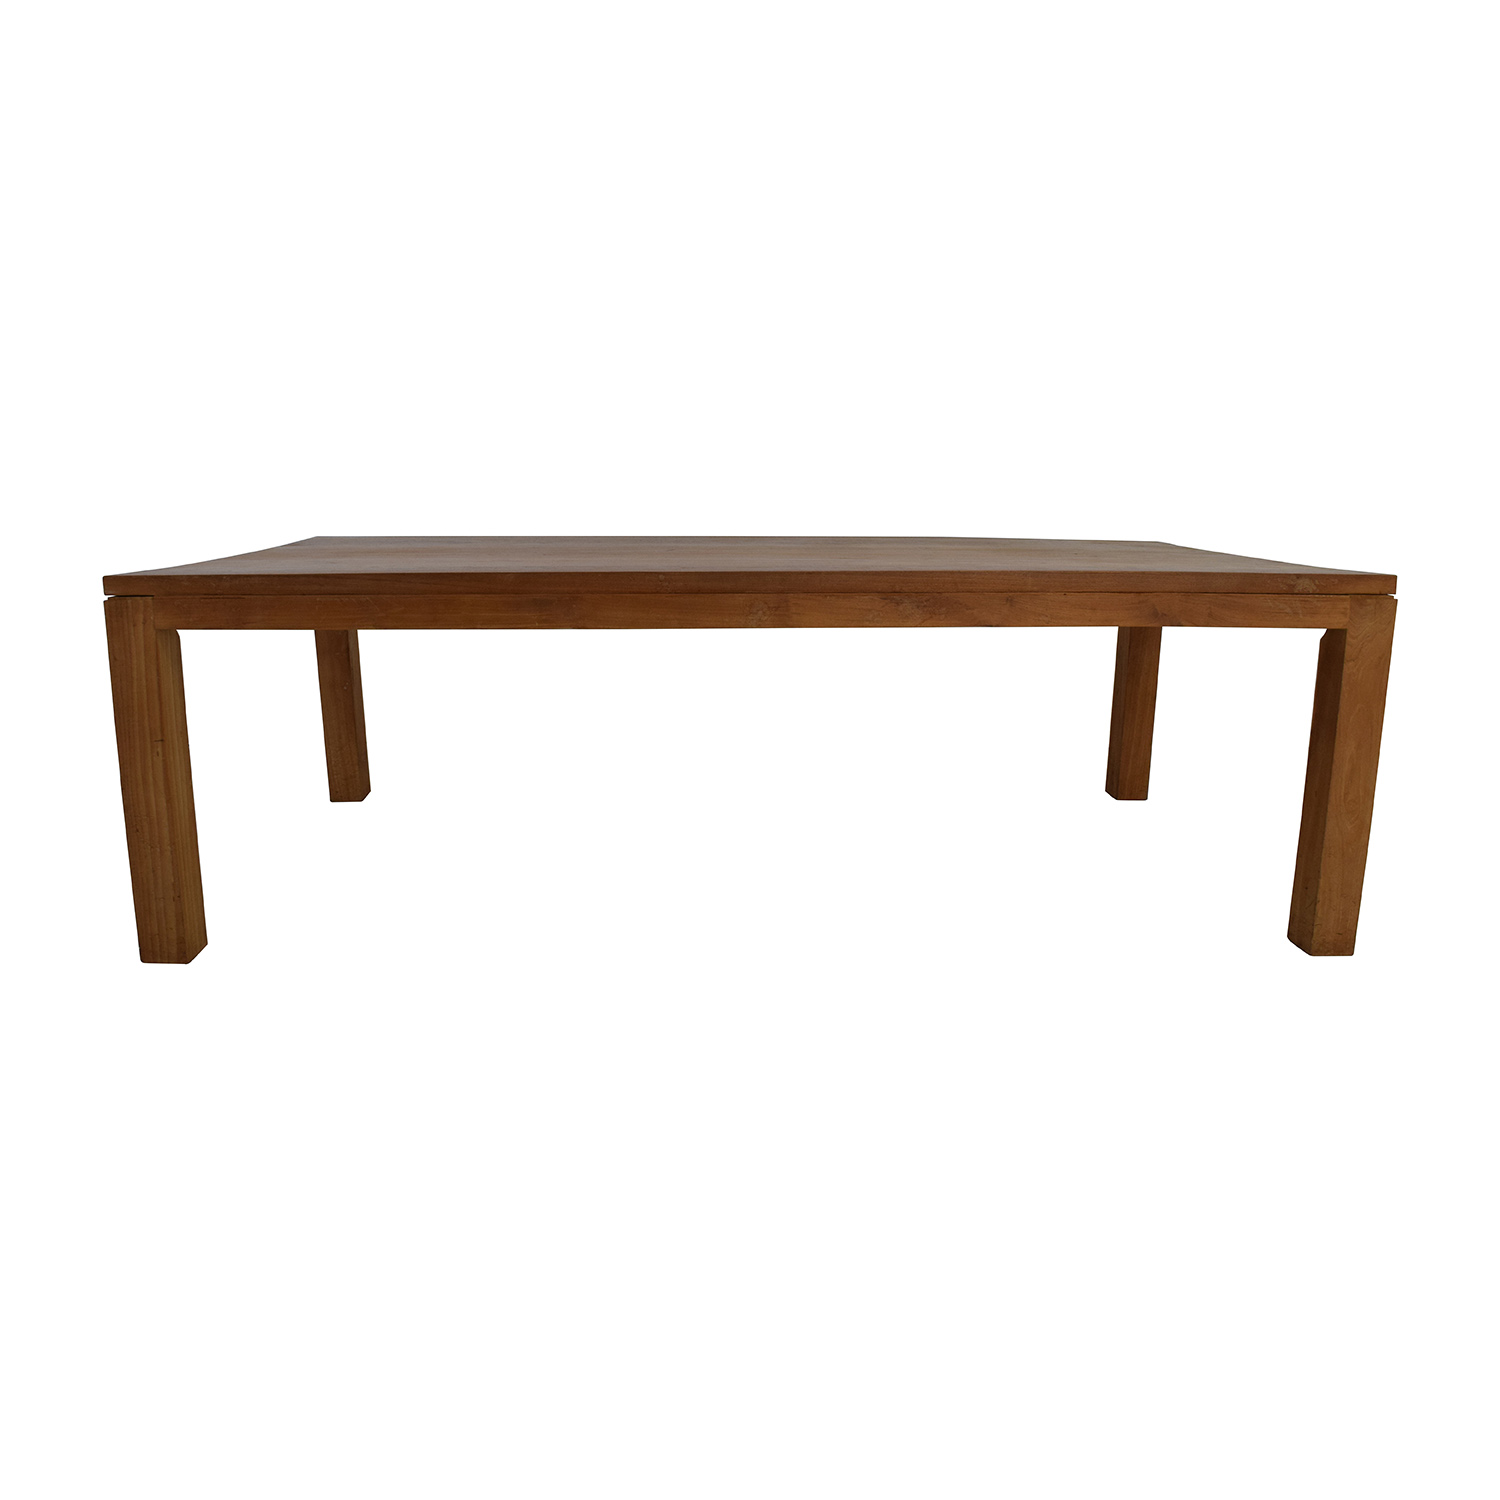 Crate And Barrel Crate And Barrel Wood Conference Table Dimensions ...